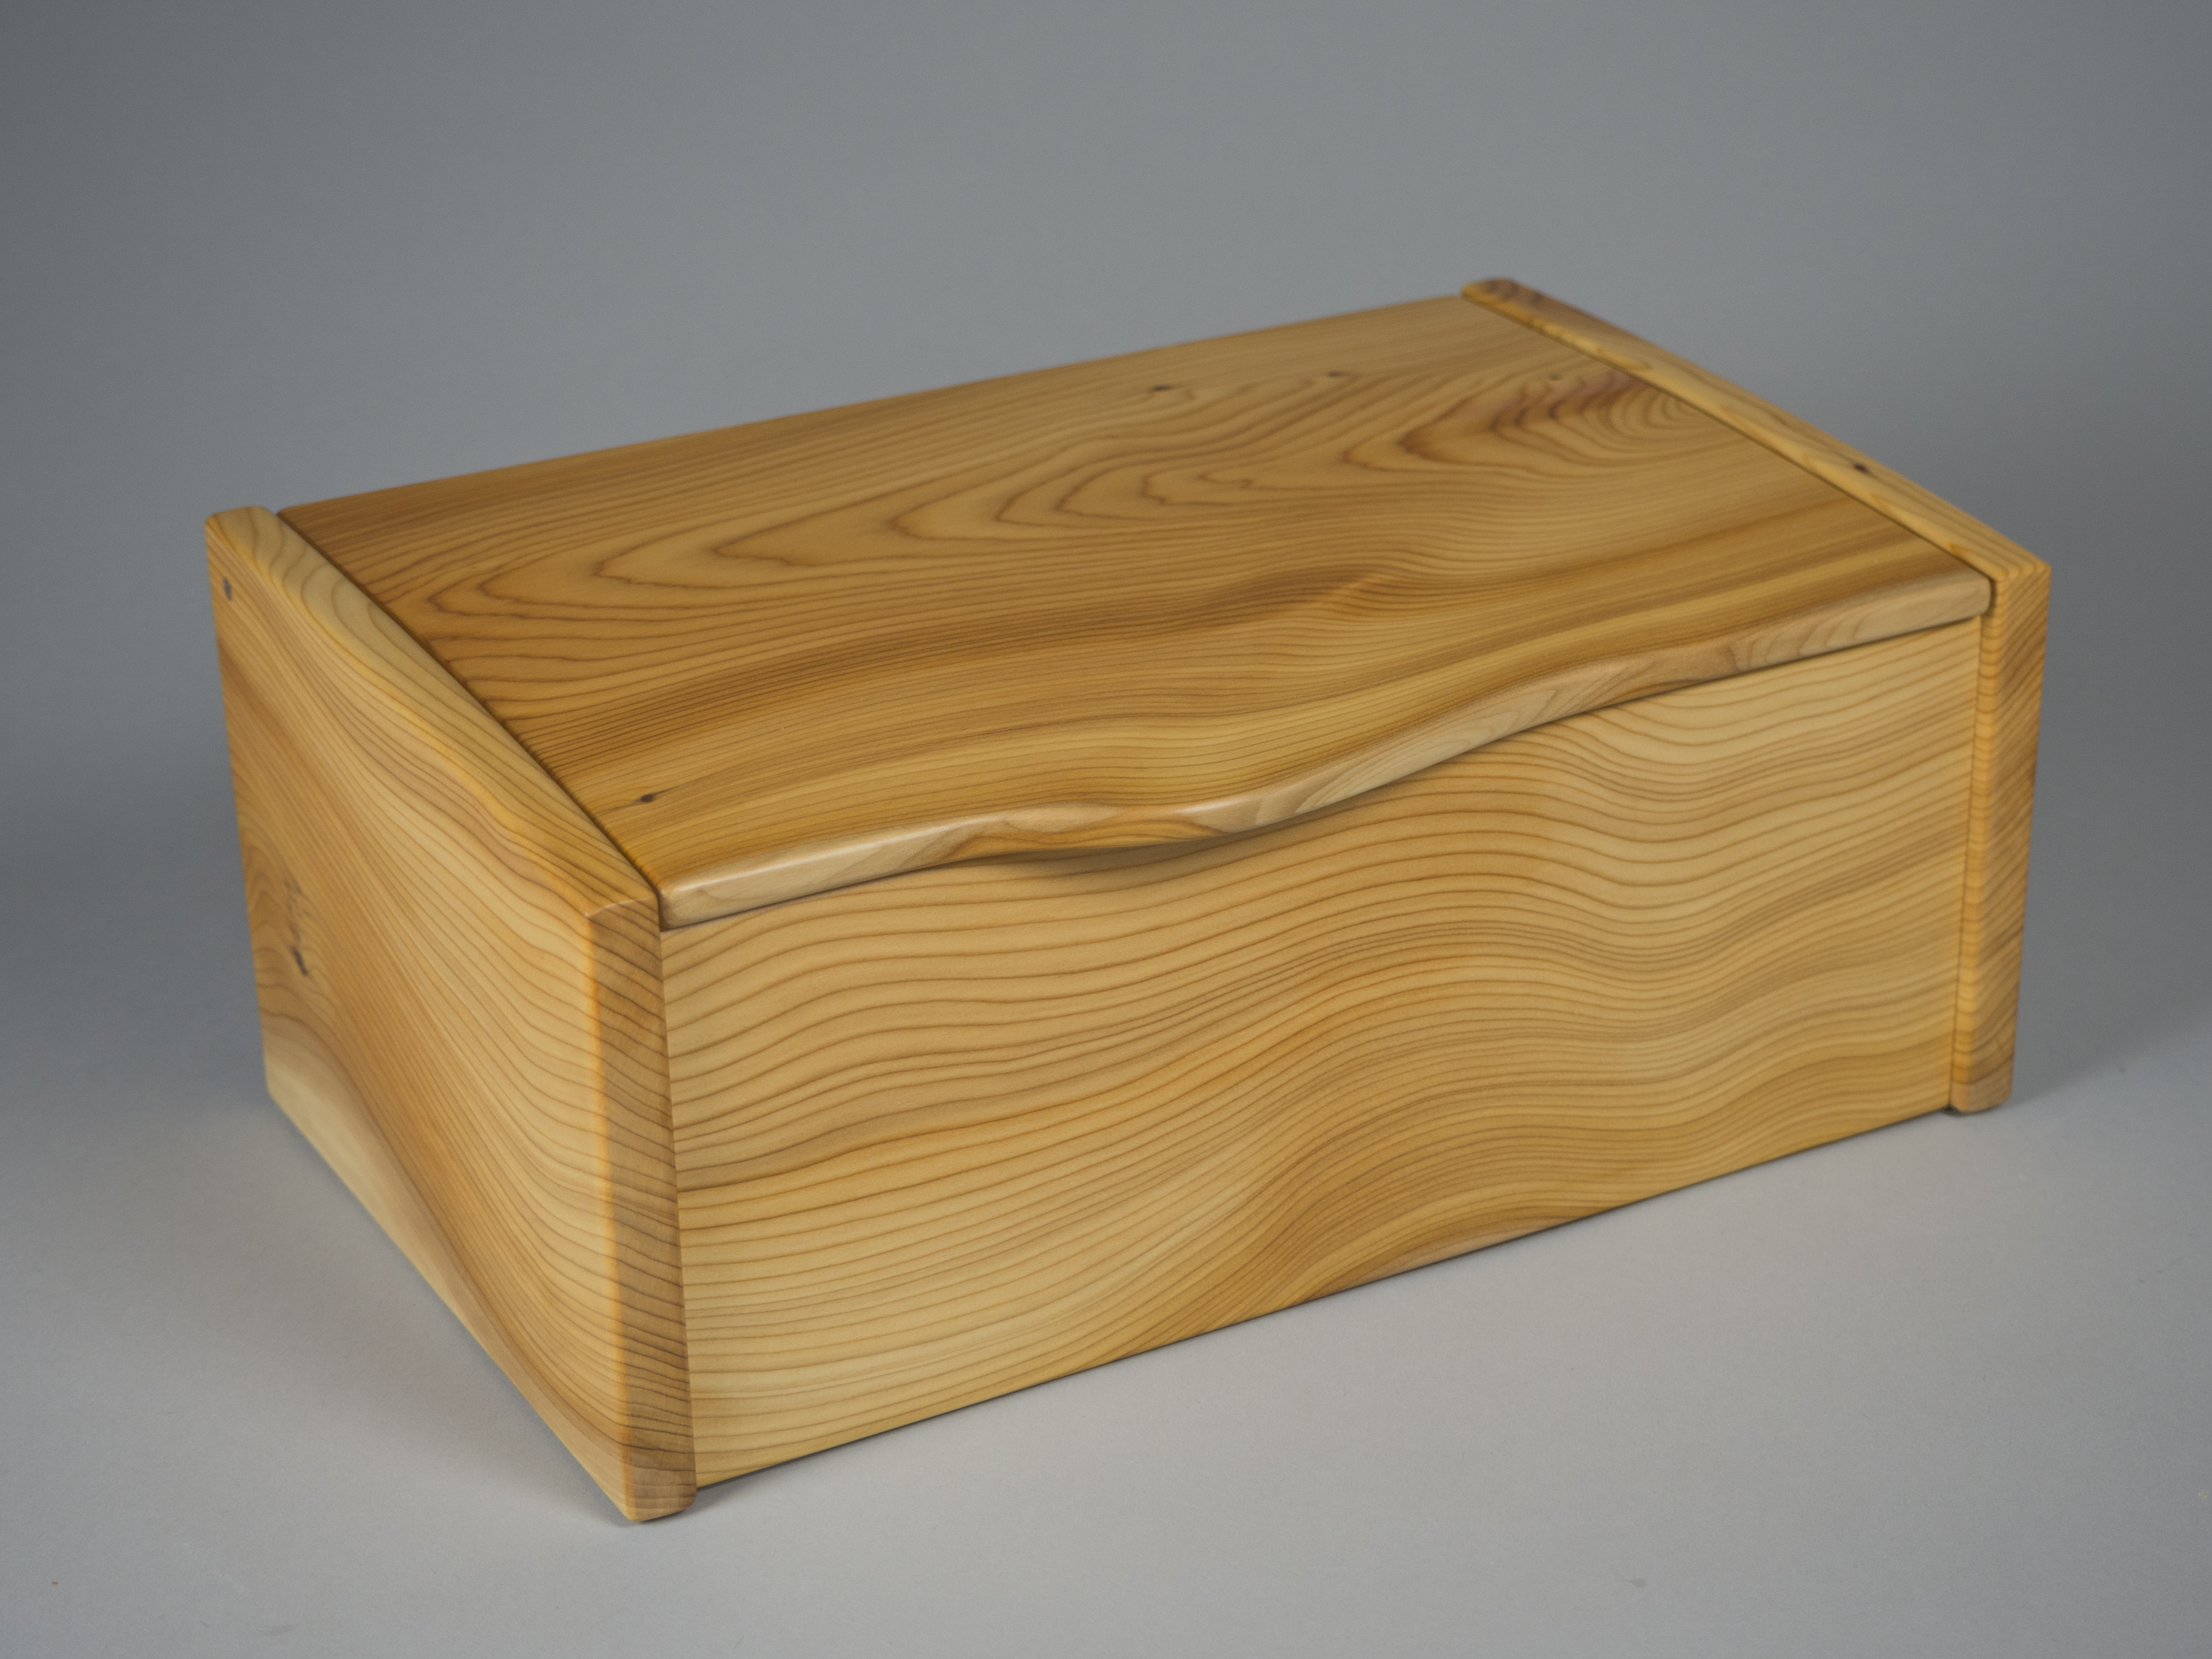 Box for jewellery made from yew